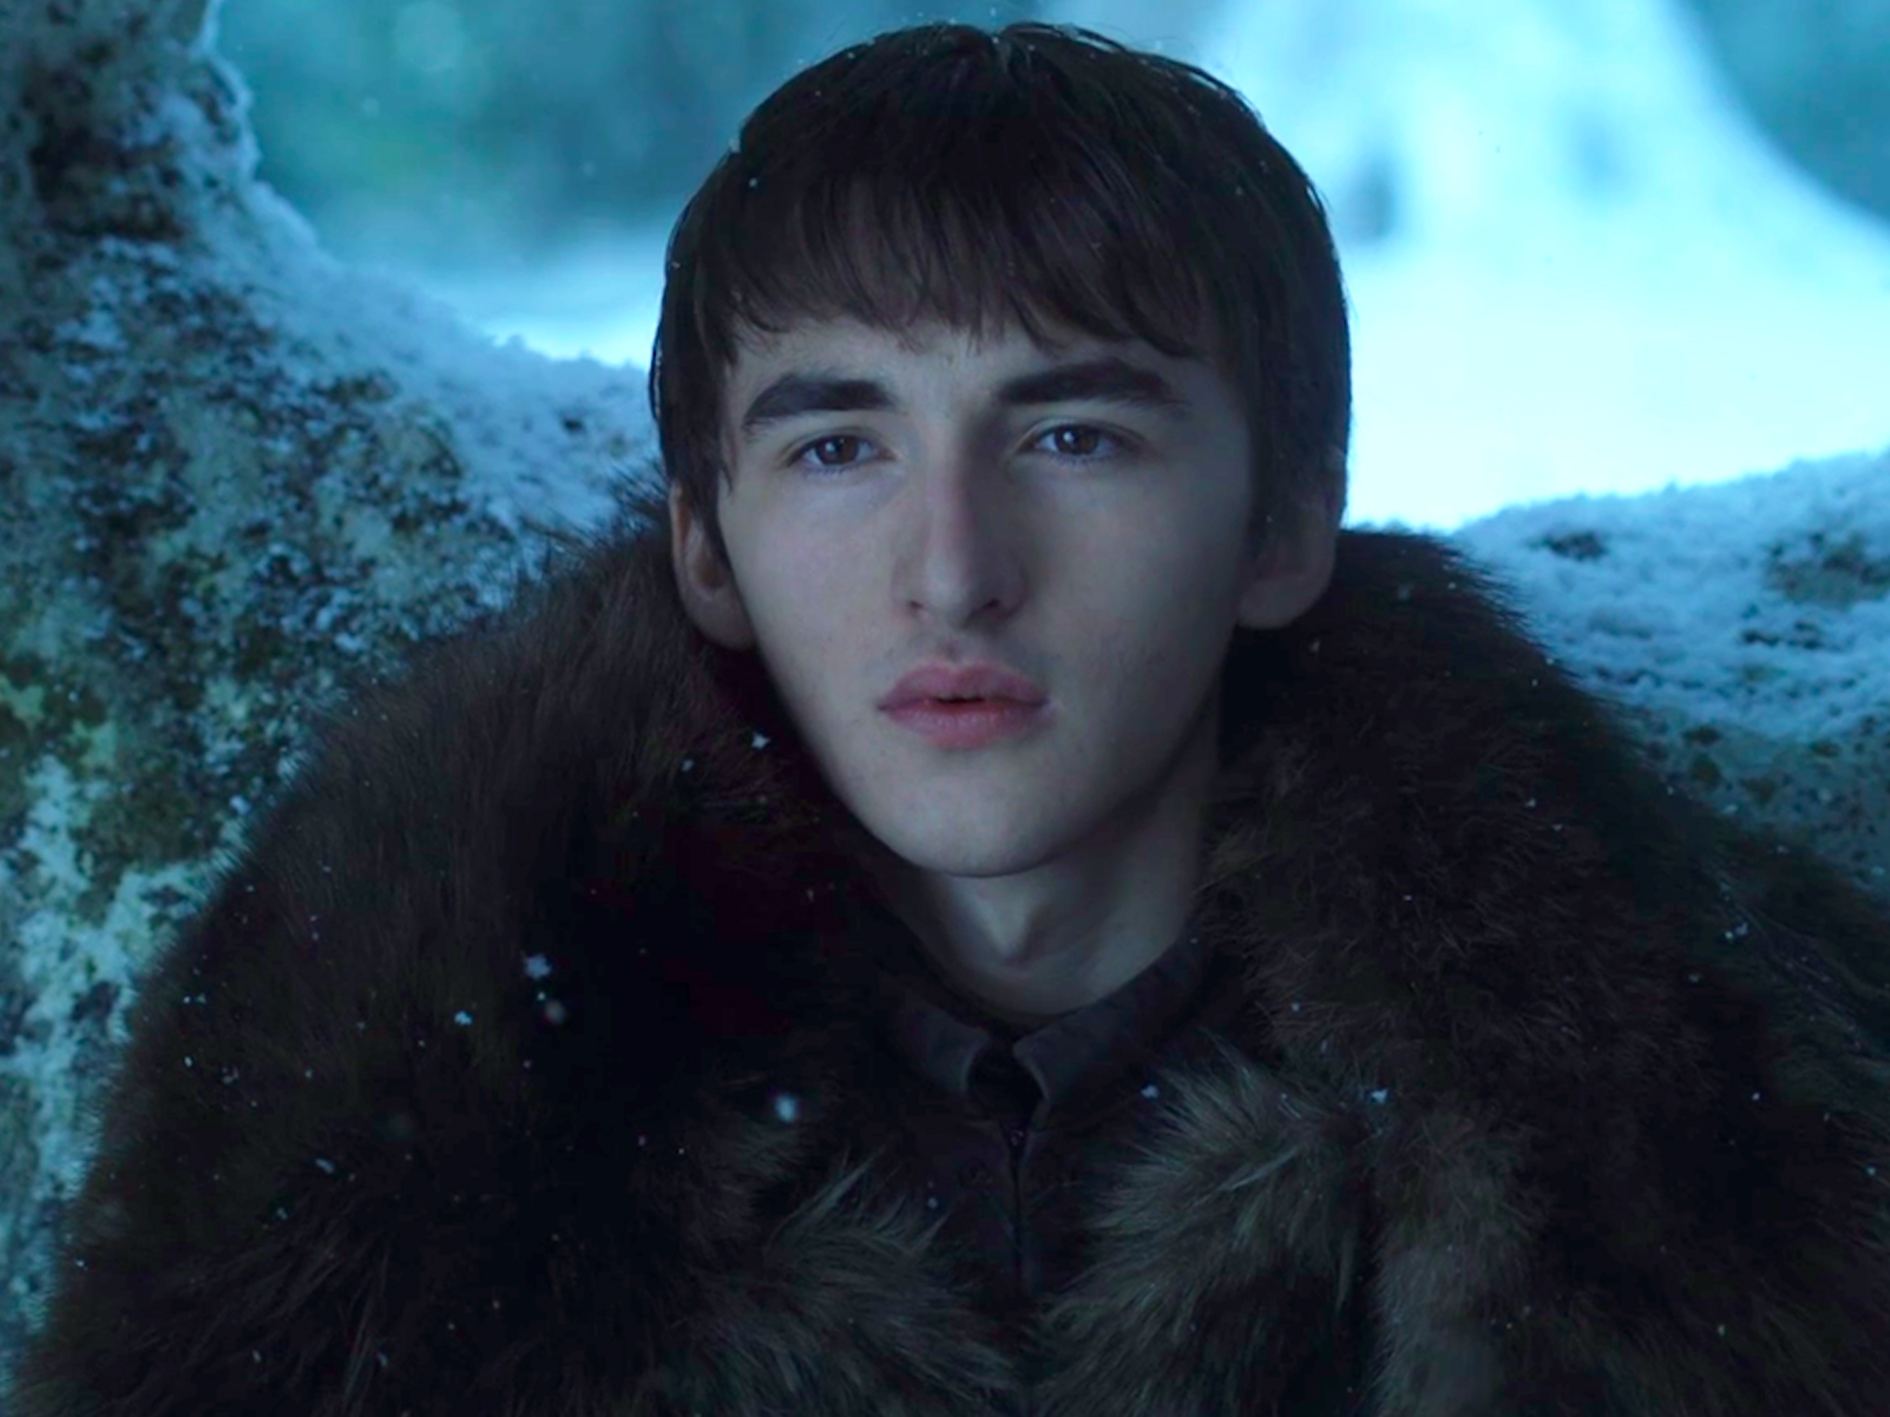 Bran Stark in Game of Thrones.